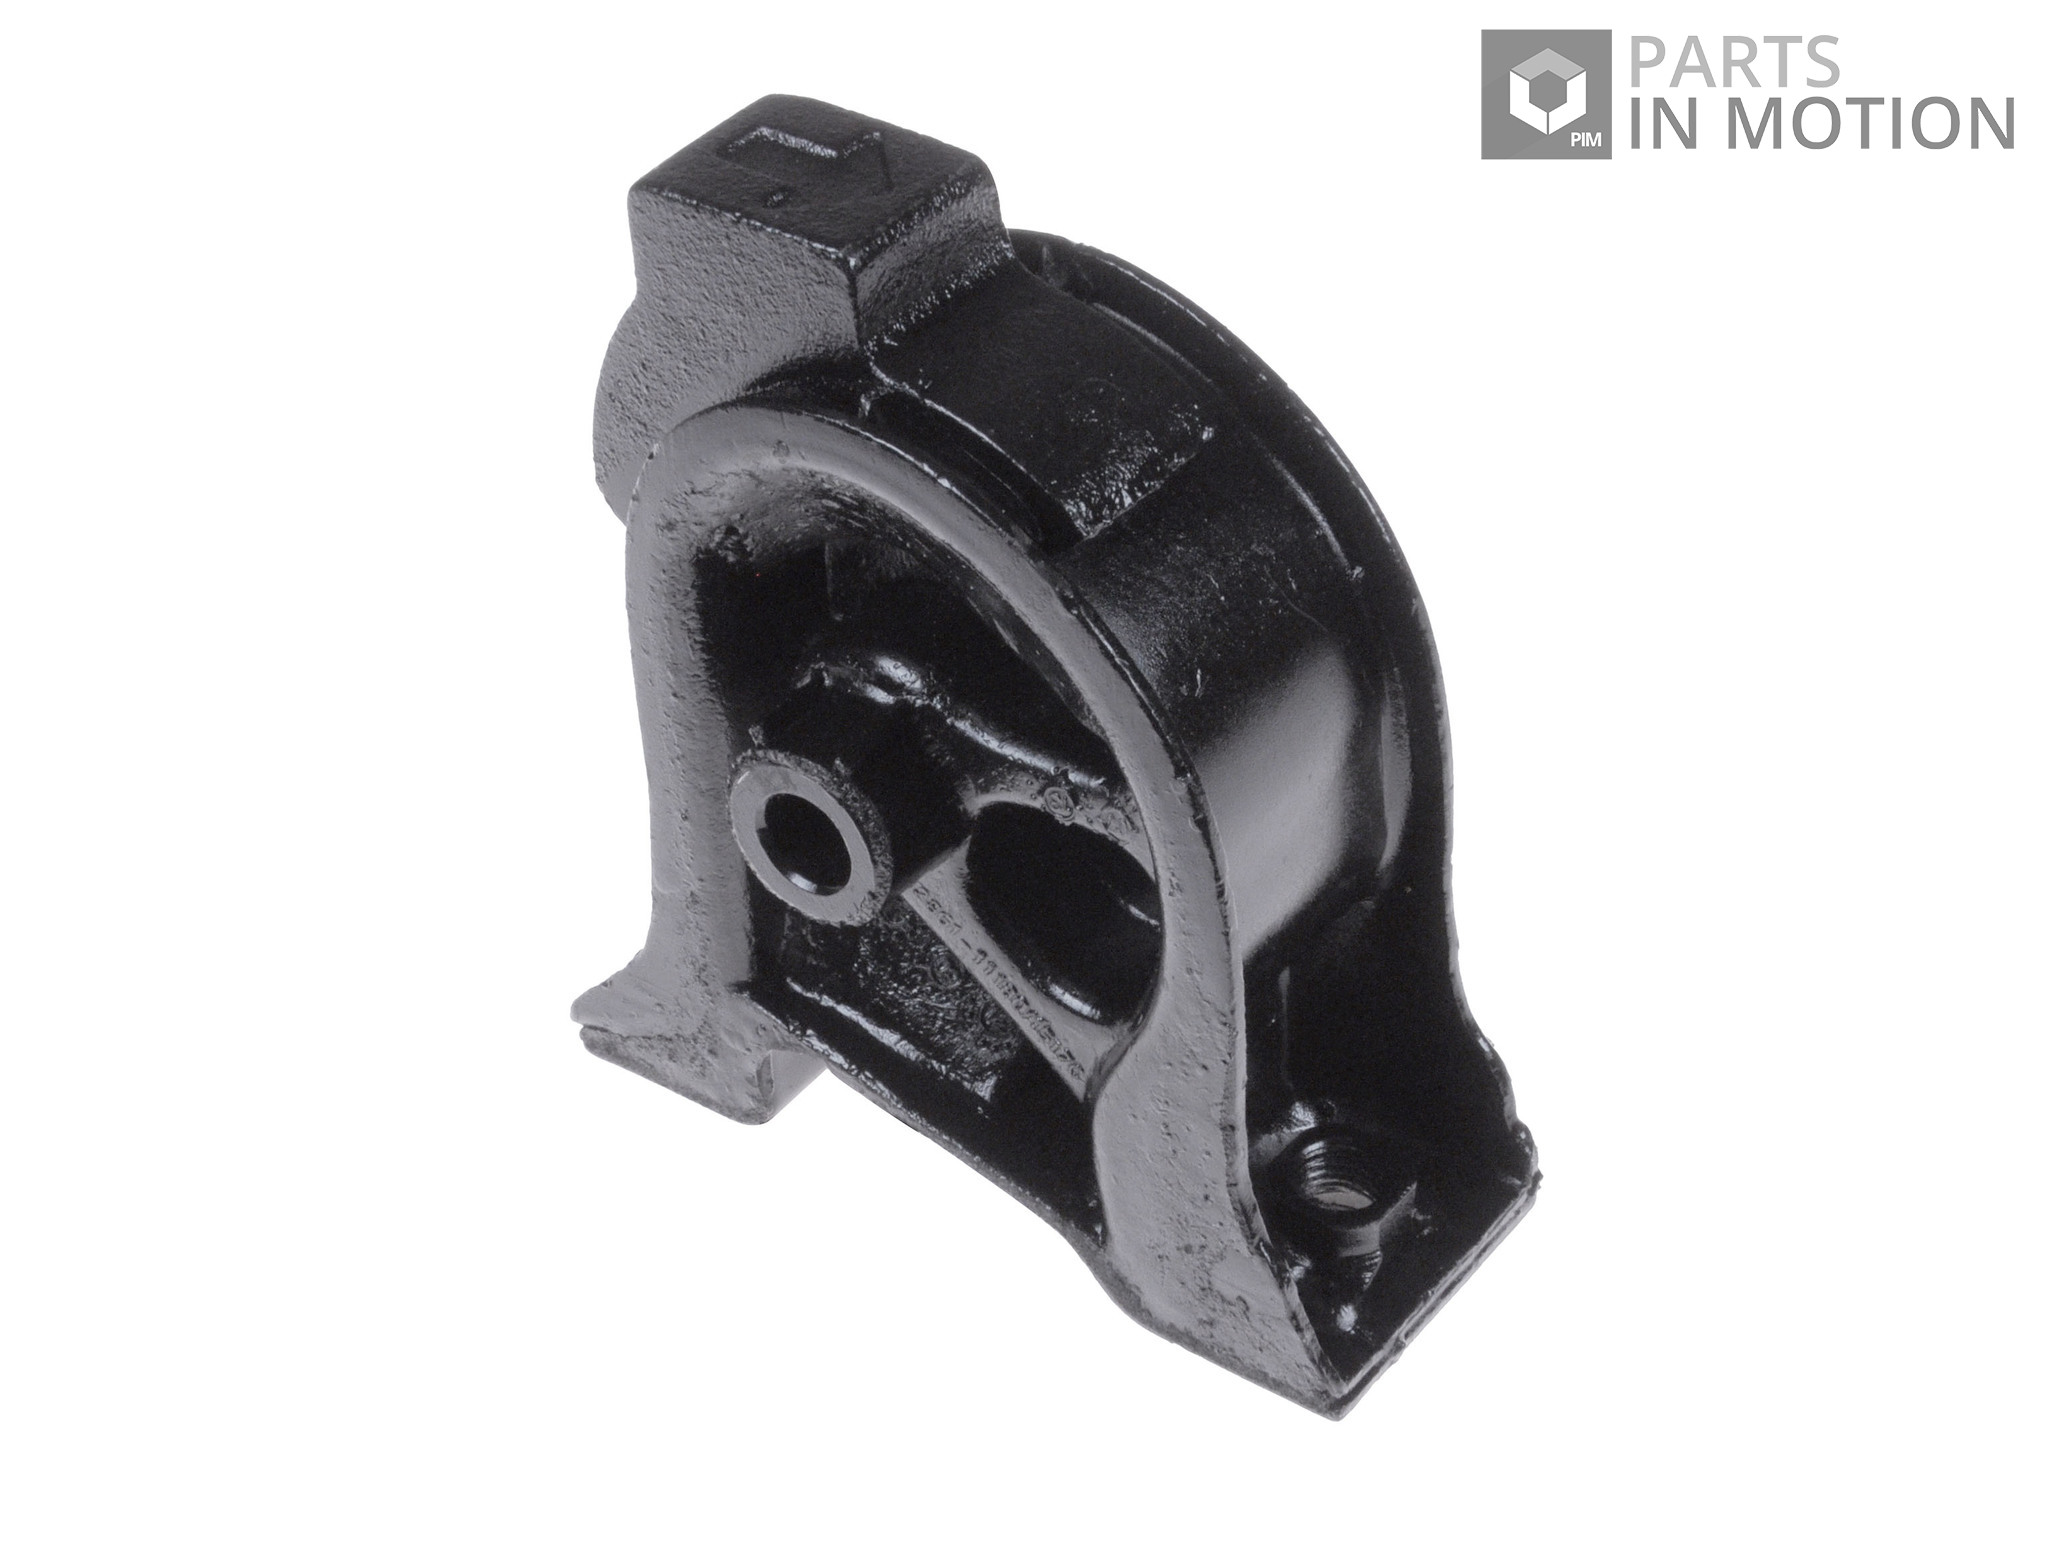 Engine Mount fits TOYOTA COROLLA E10 1.3 Front 92 to 97 4E-FE Manual Mounting